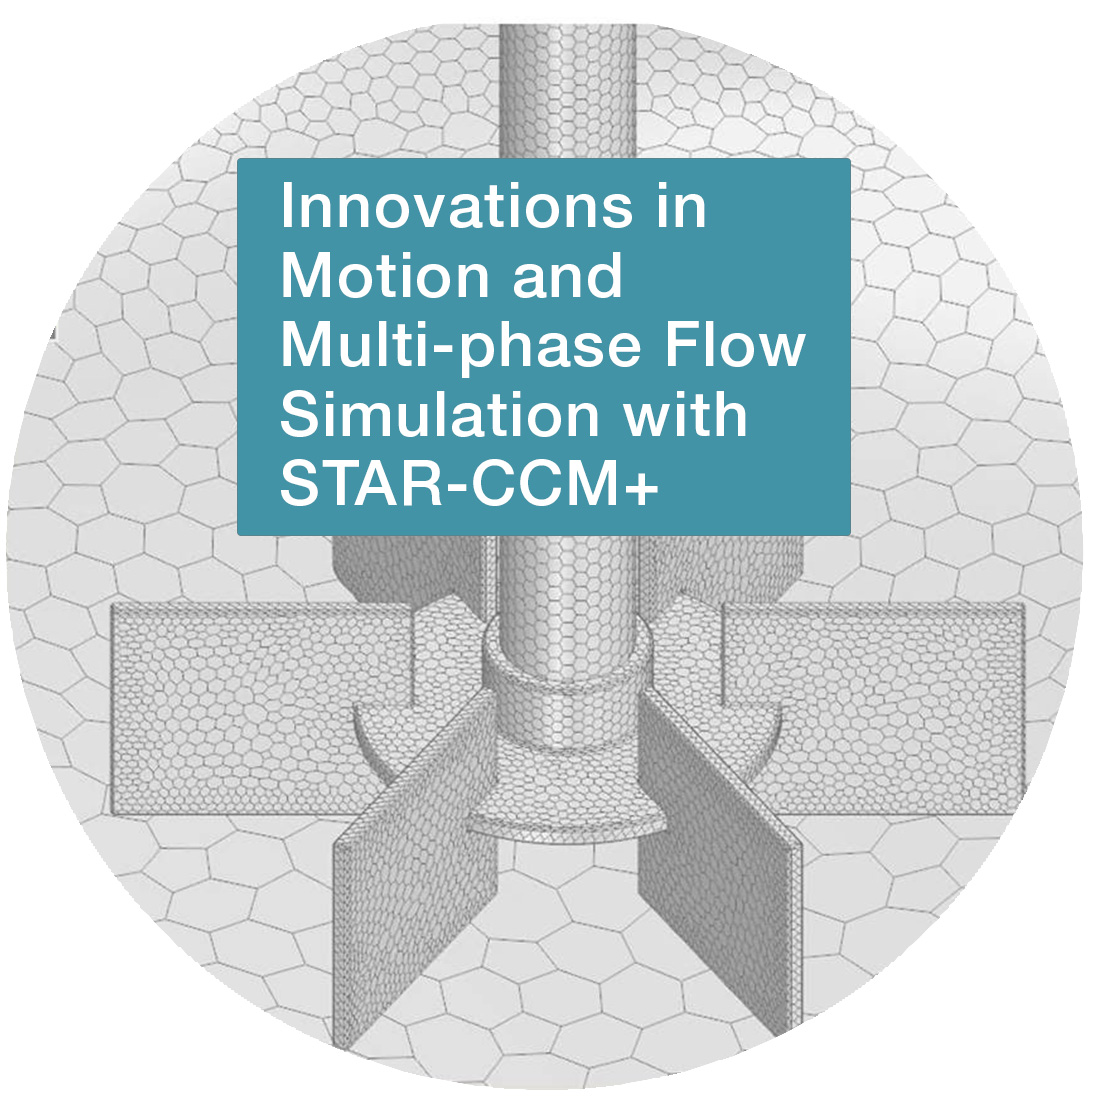 Innovations in Motion and Multi-phase Flow Simulation with STAR-CCM+